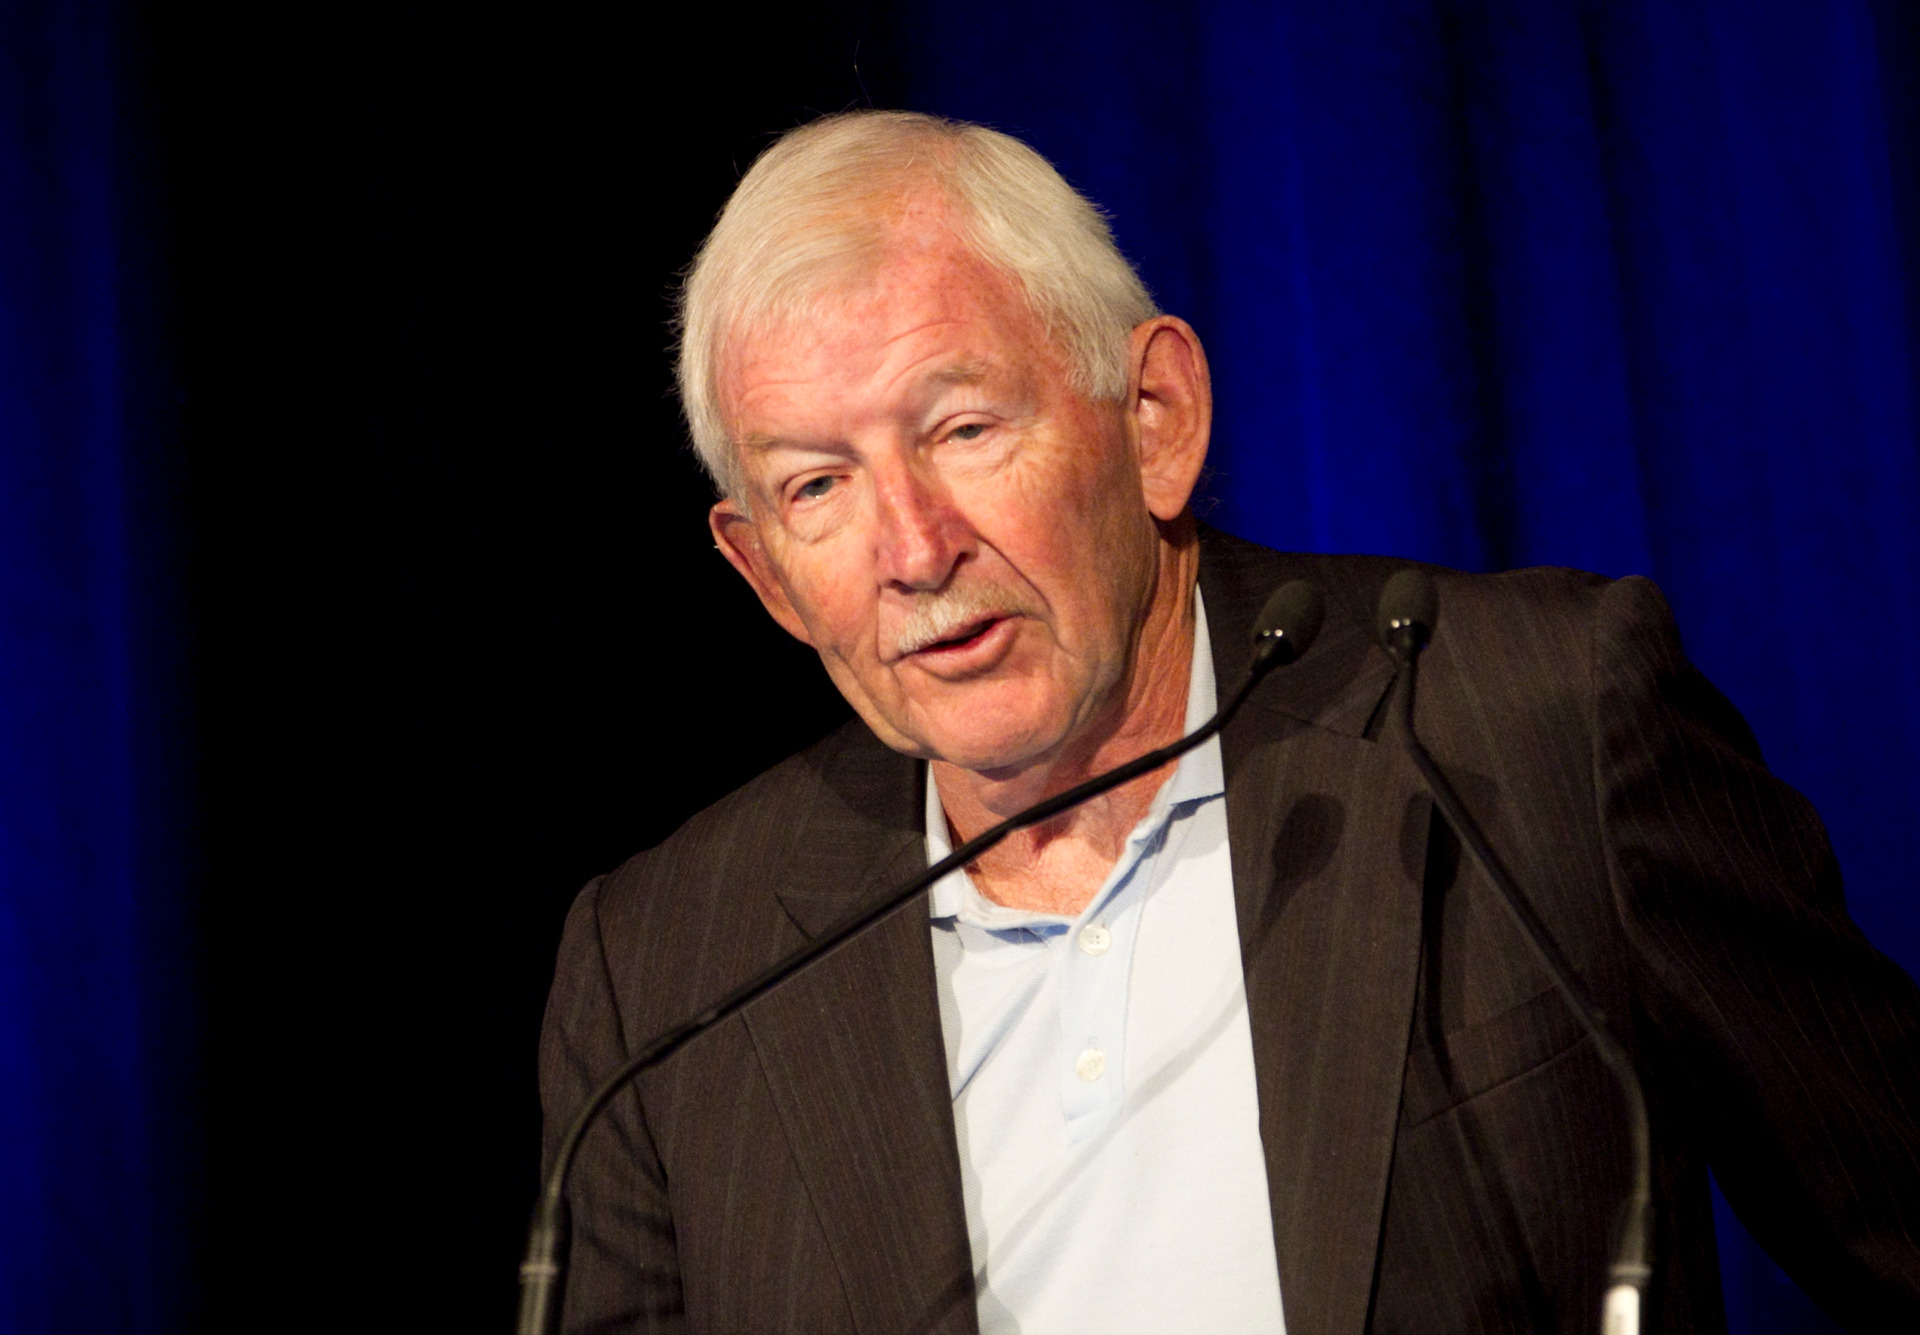 Sir Ron Brierley finally calls it quits at 81